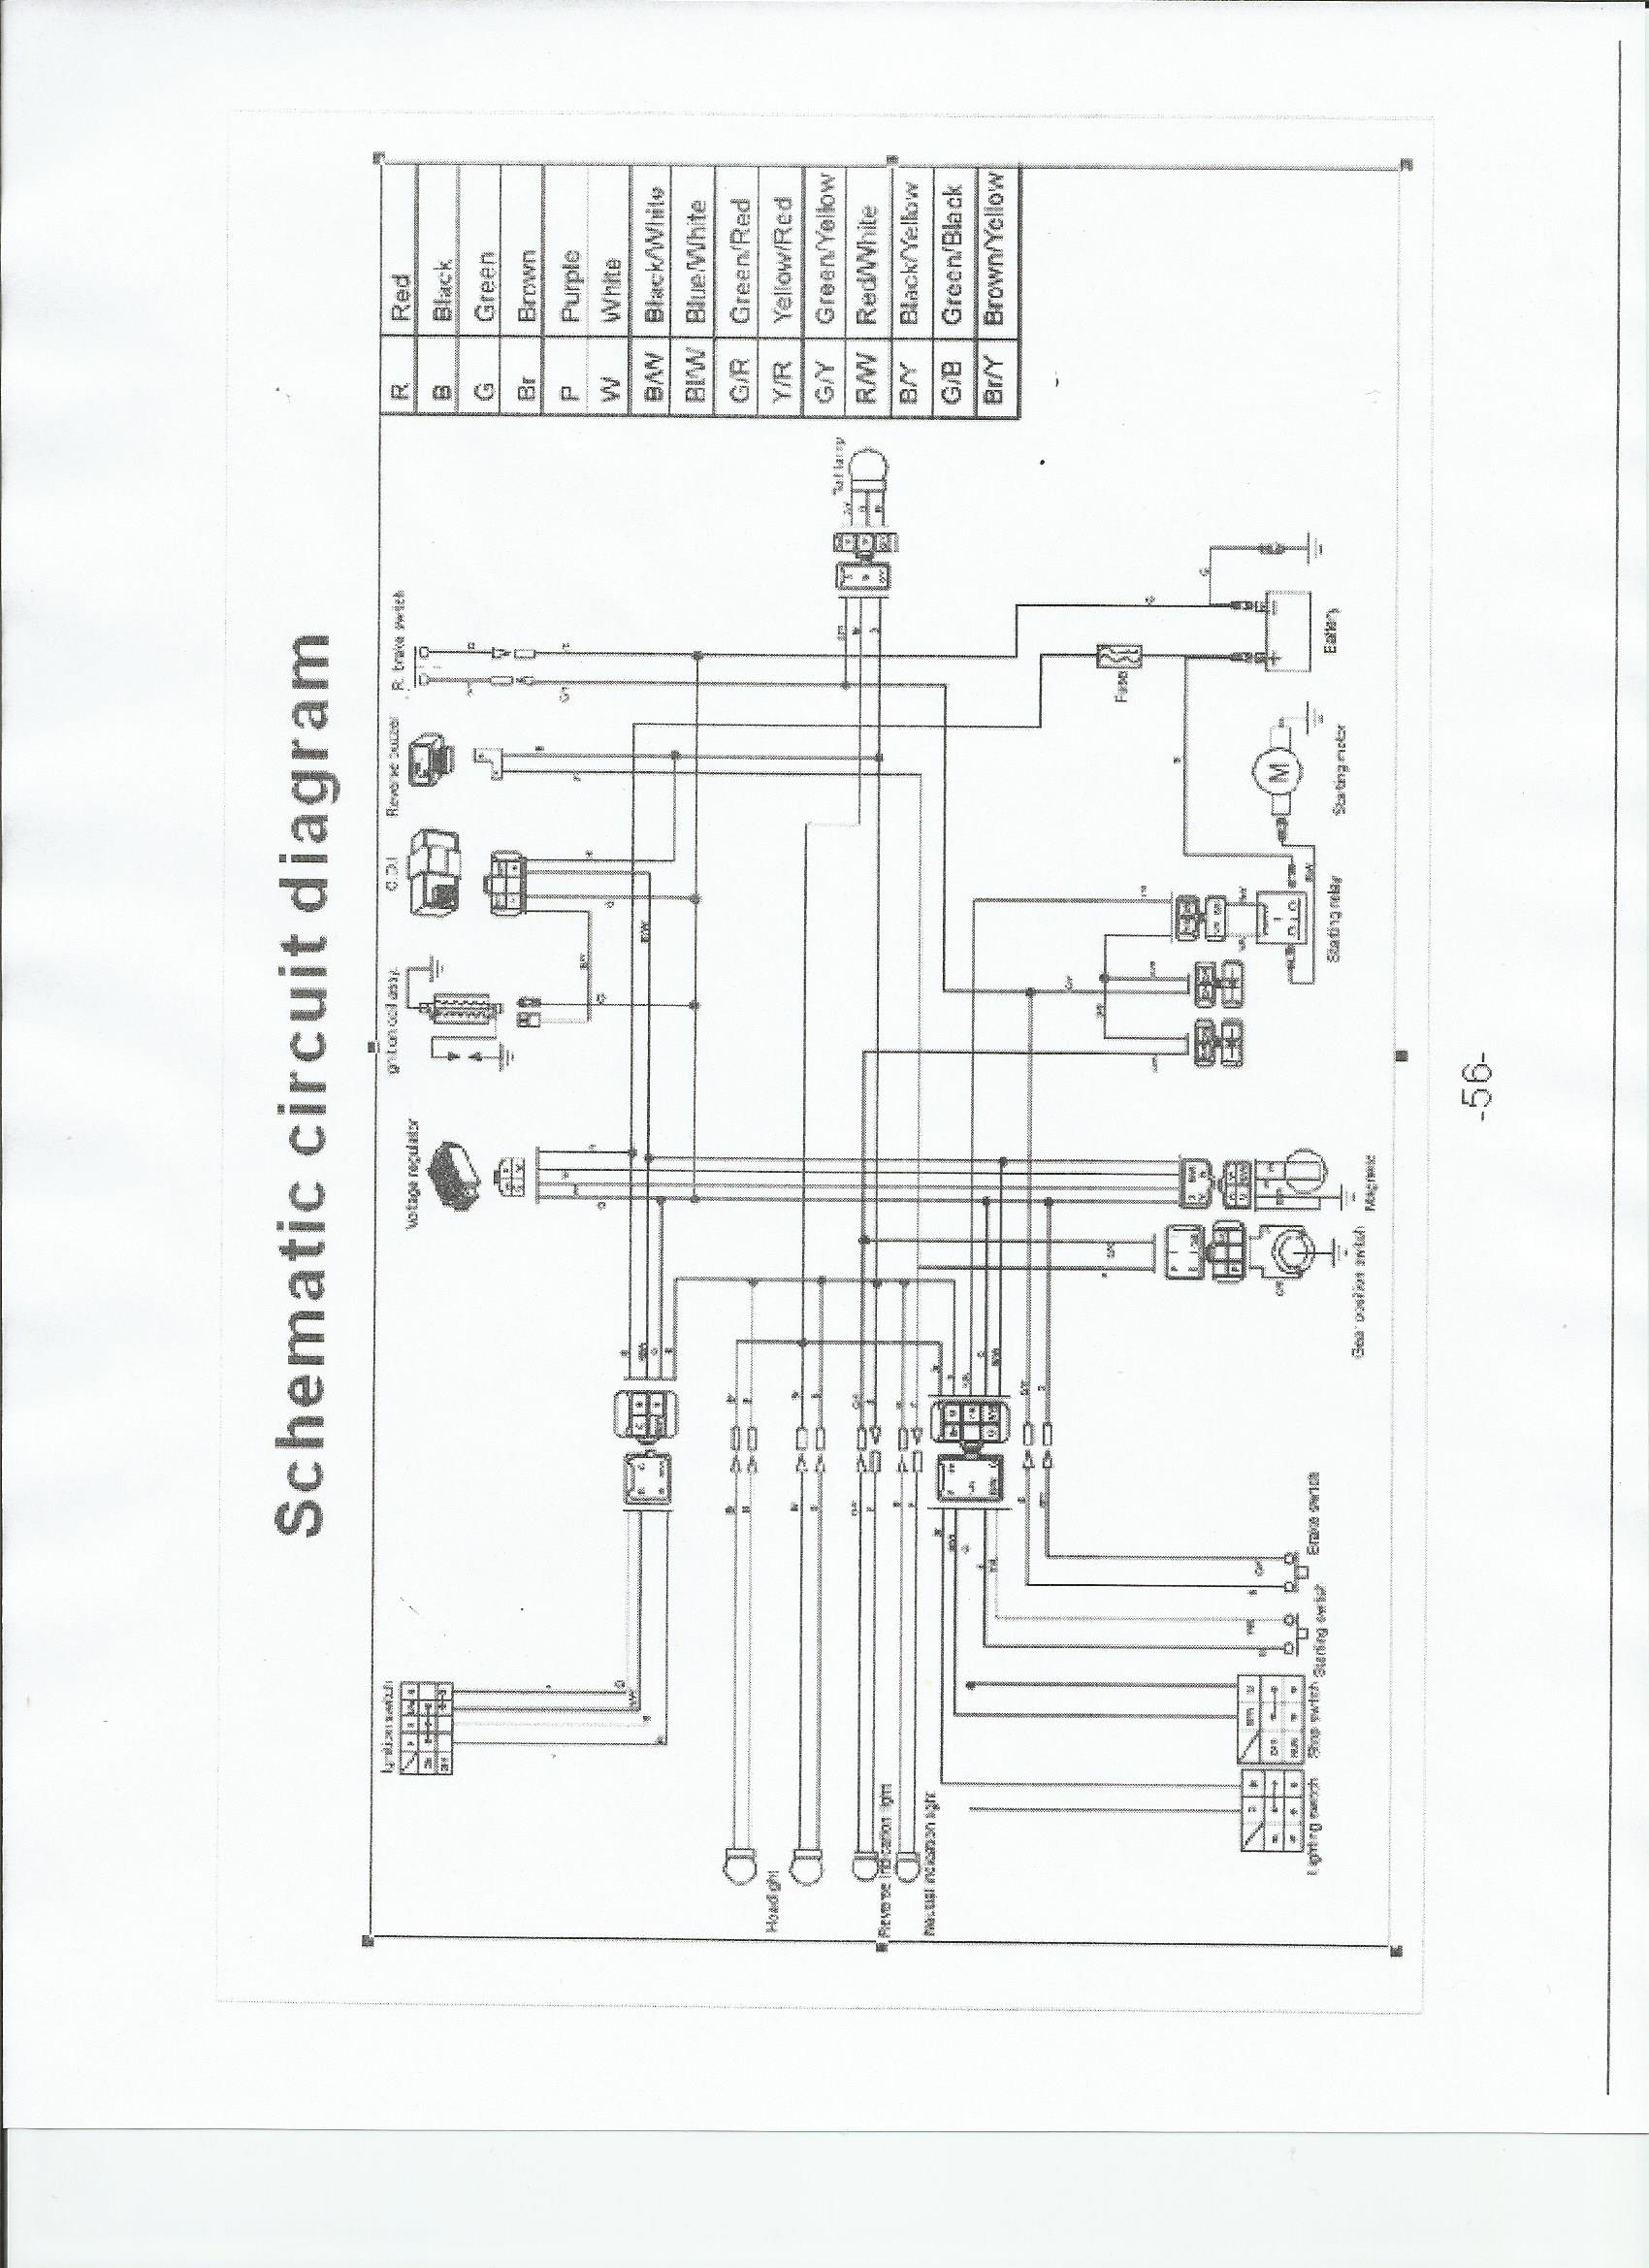 tao tao wiring schematic similiar pocket bike wiring diagram keywords readingrat net 49cc mini chopper wiring harness at bayanpartner.co